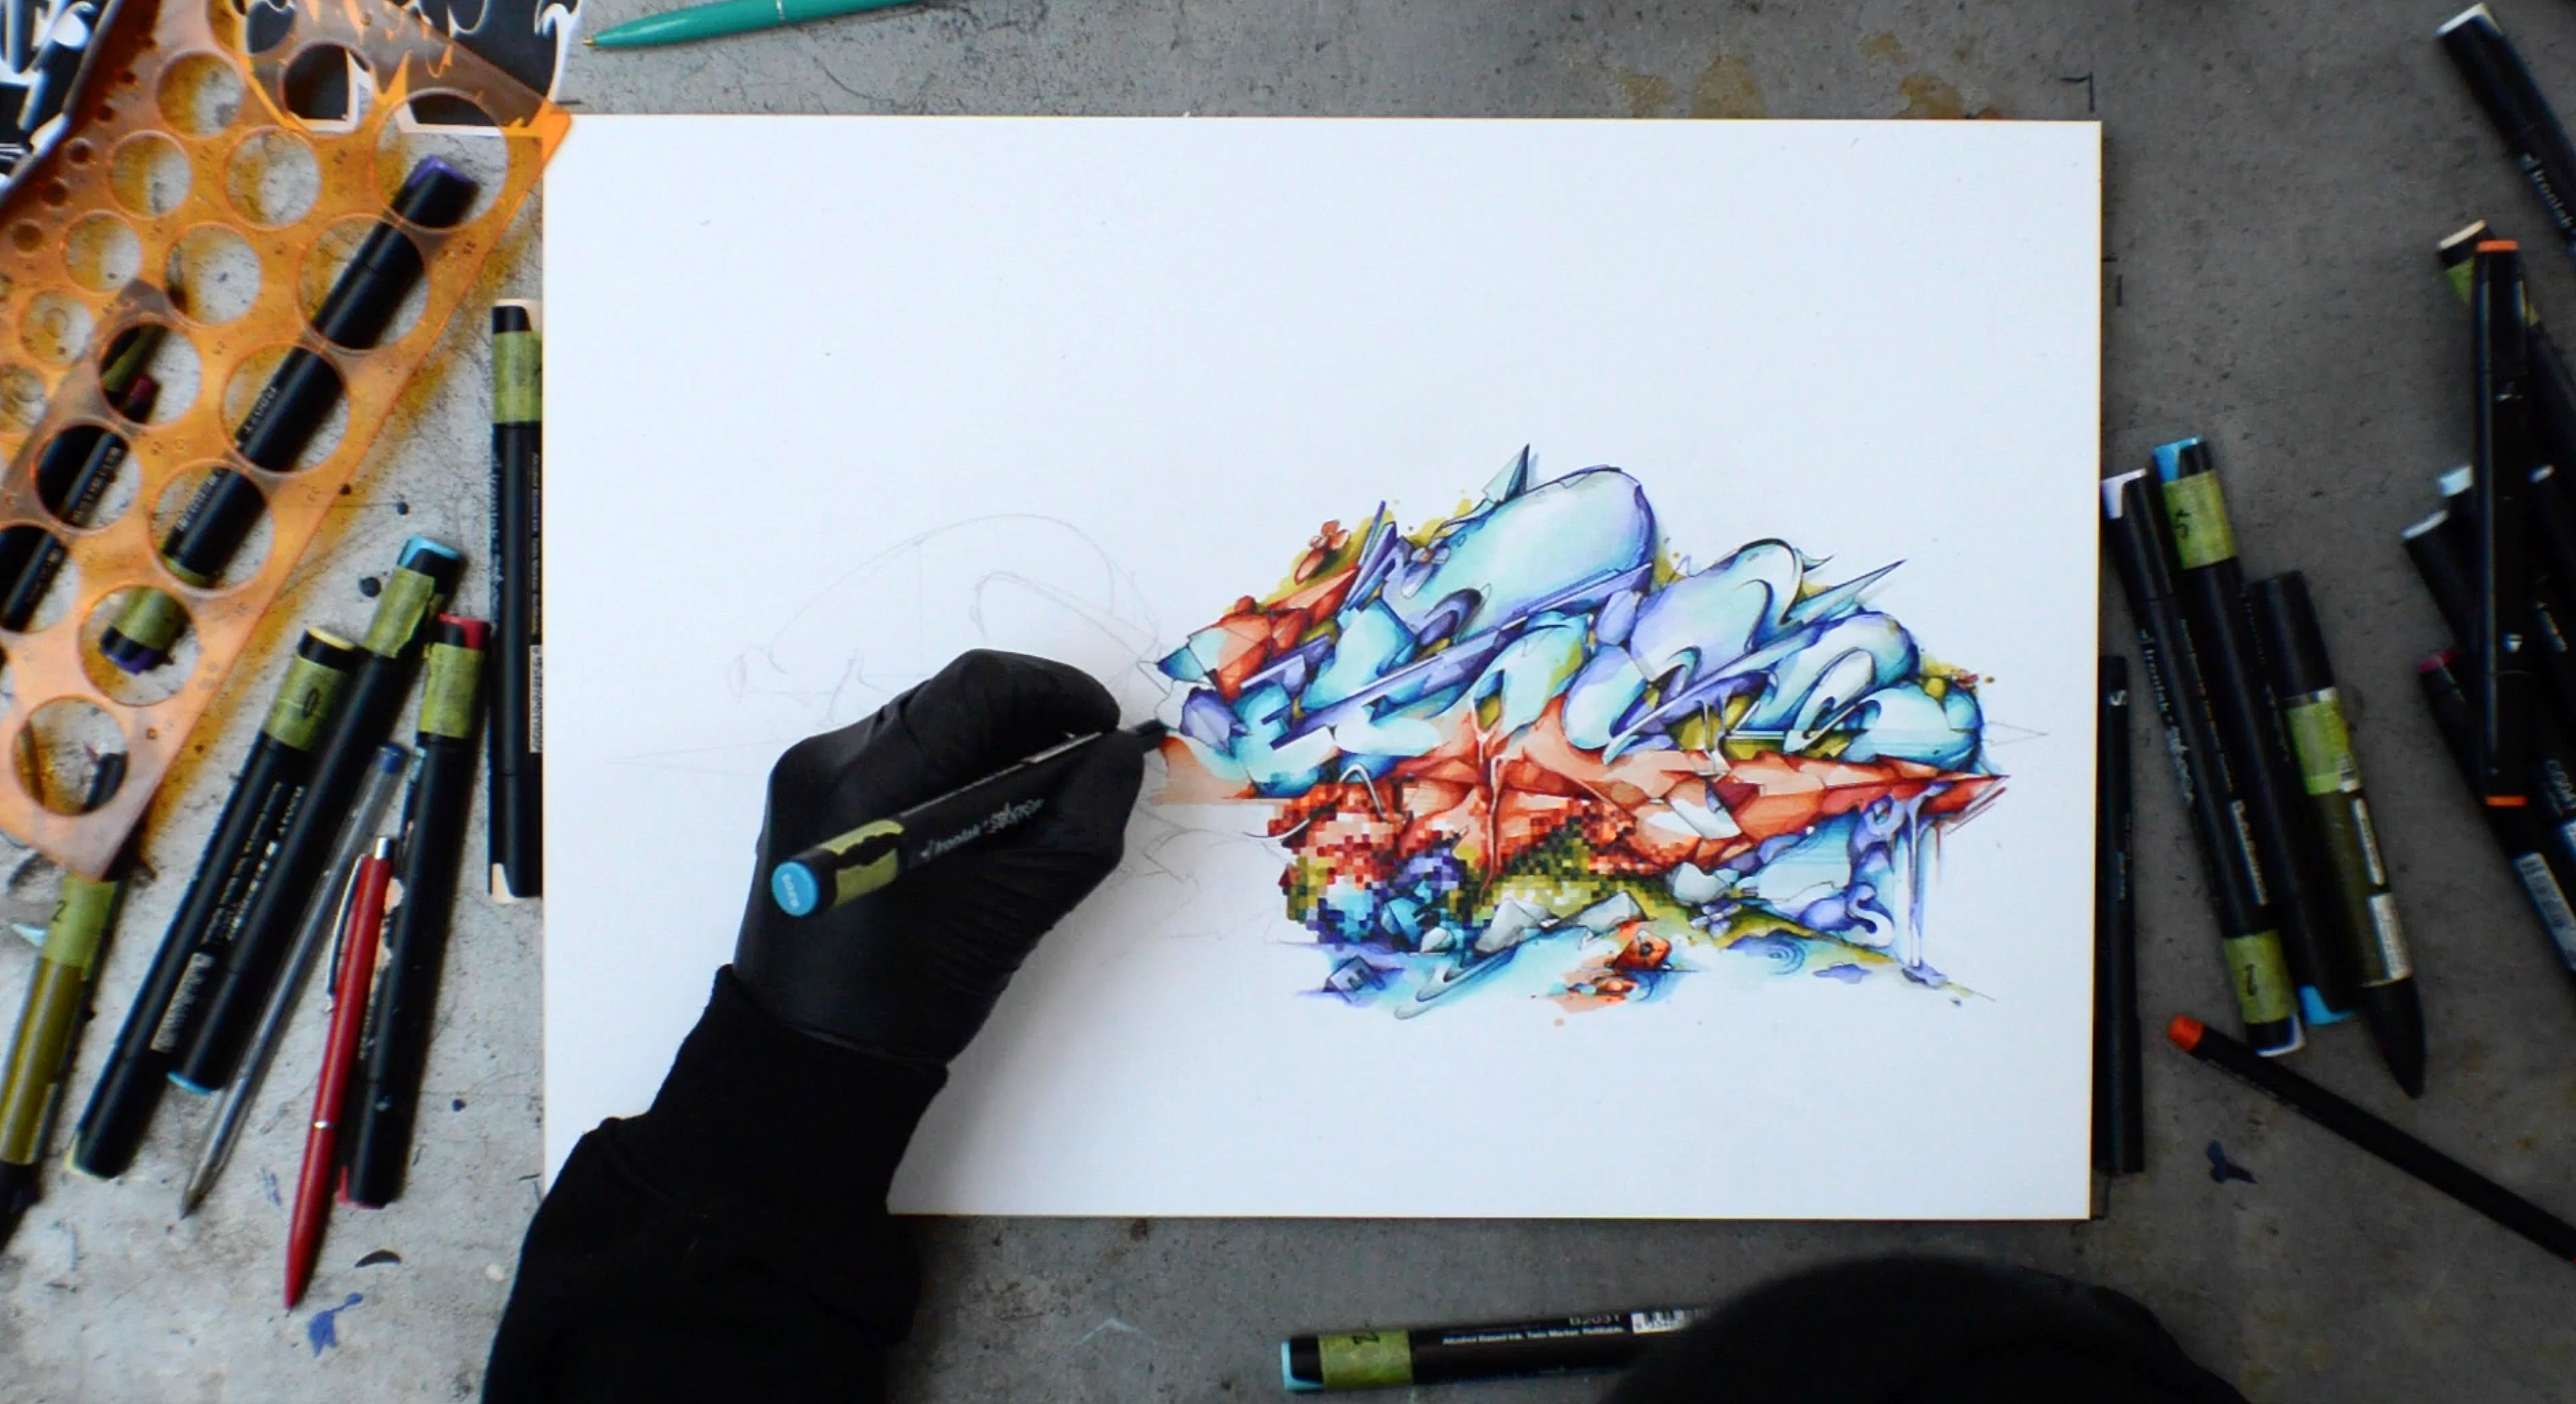 A work by Does - Drawing Adore 1